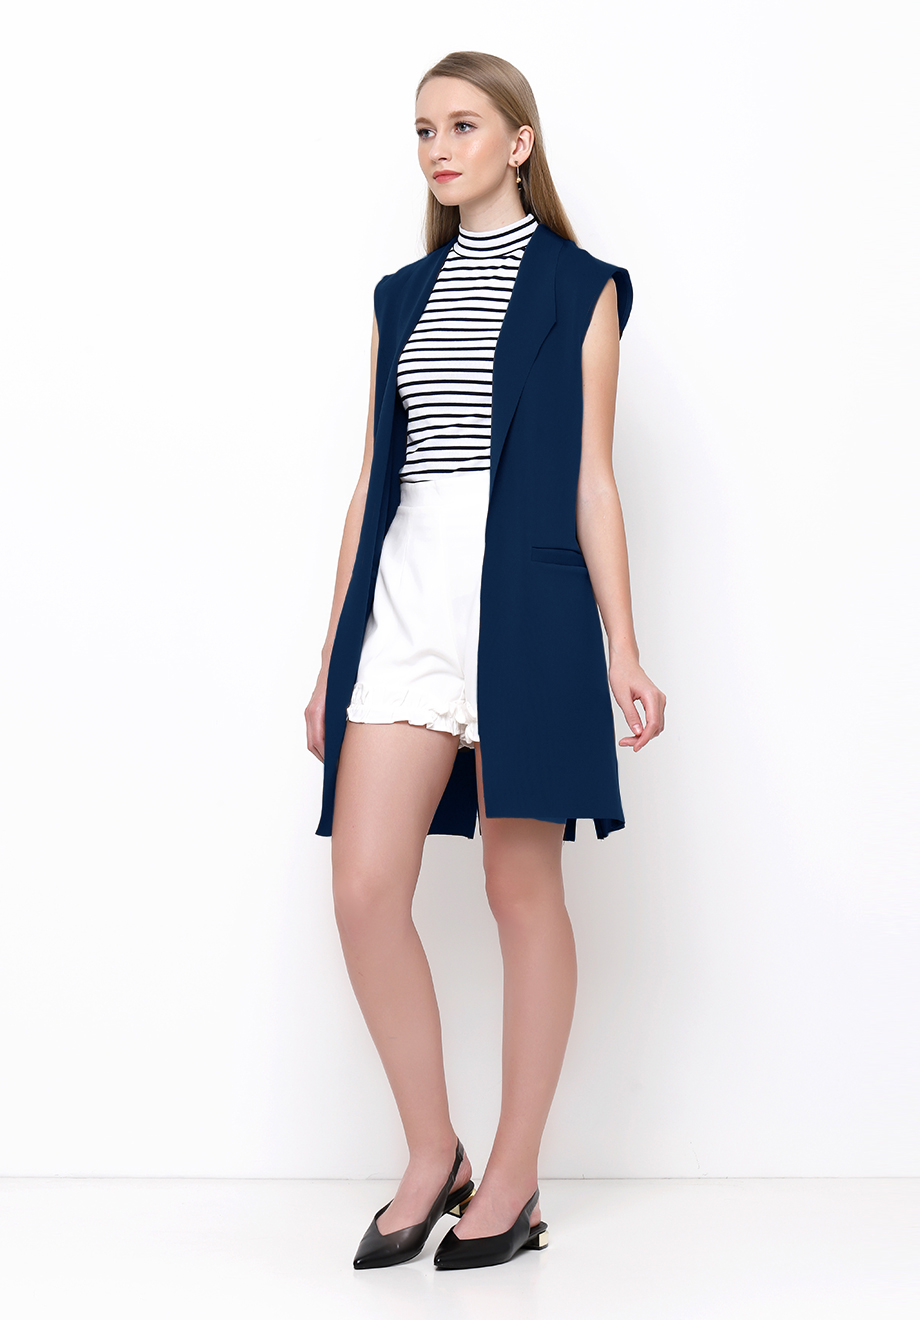 Chocochips Boutique Marino Dress Blue Out Of Stock